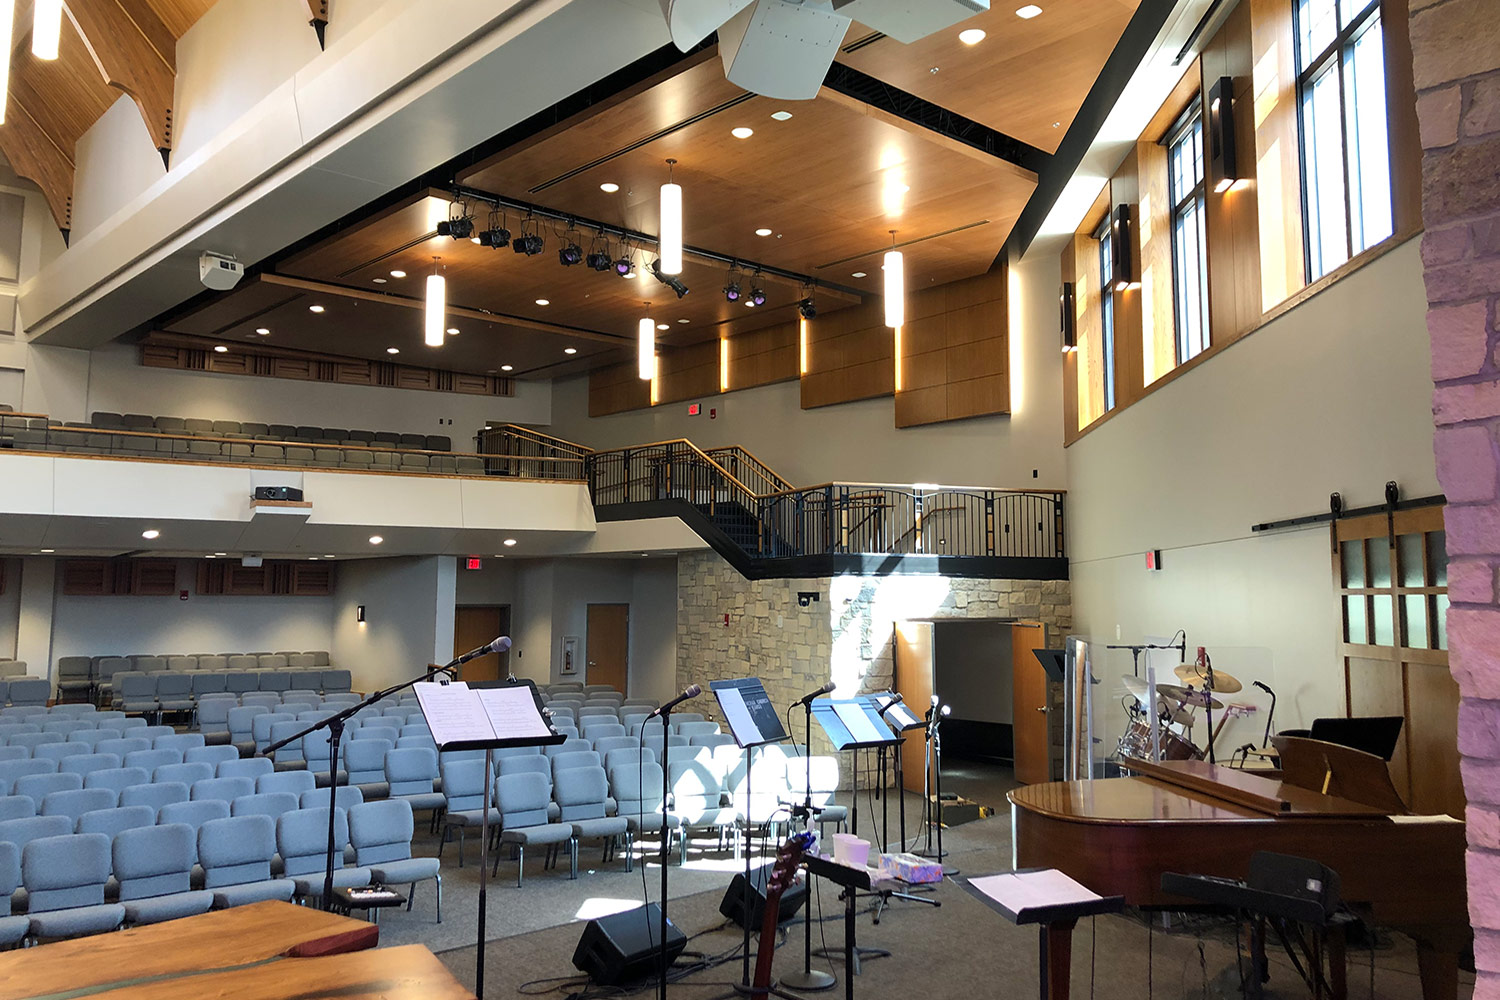 The First Lutheran Church of Fargo, ND engaged WSDG to develop an acoustic and sound isolation program for their newly constructed Celebration Center. Celebration Center Musicians View.